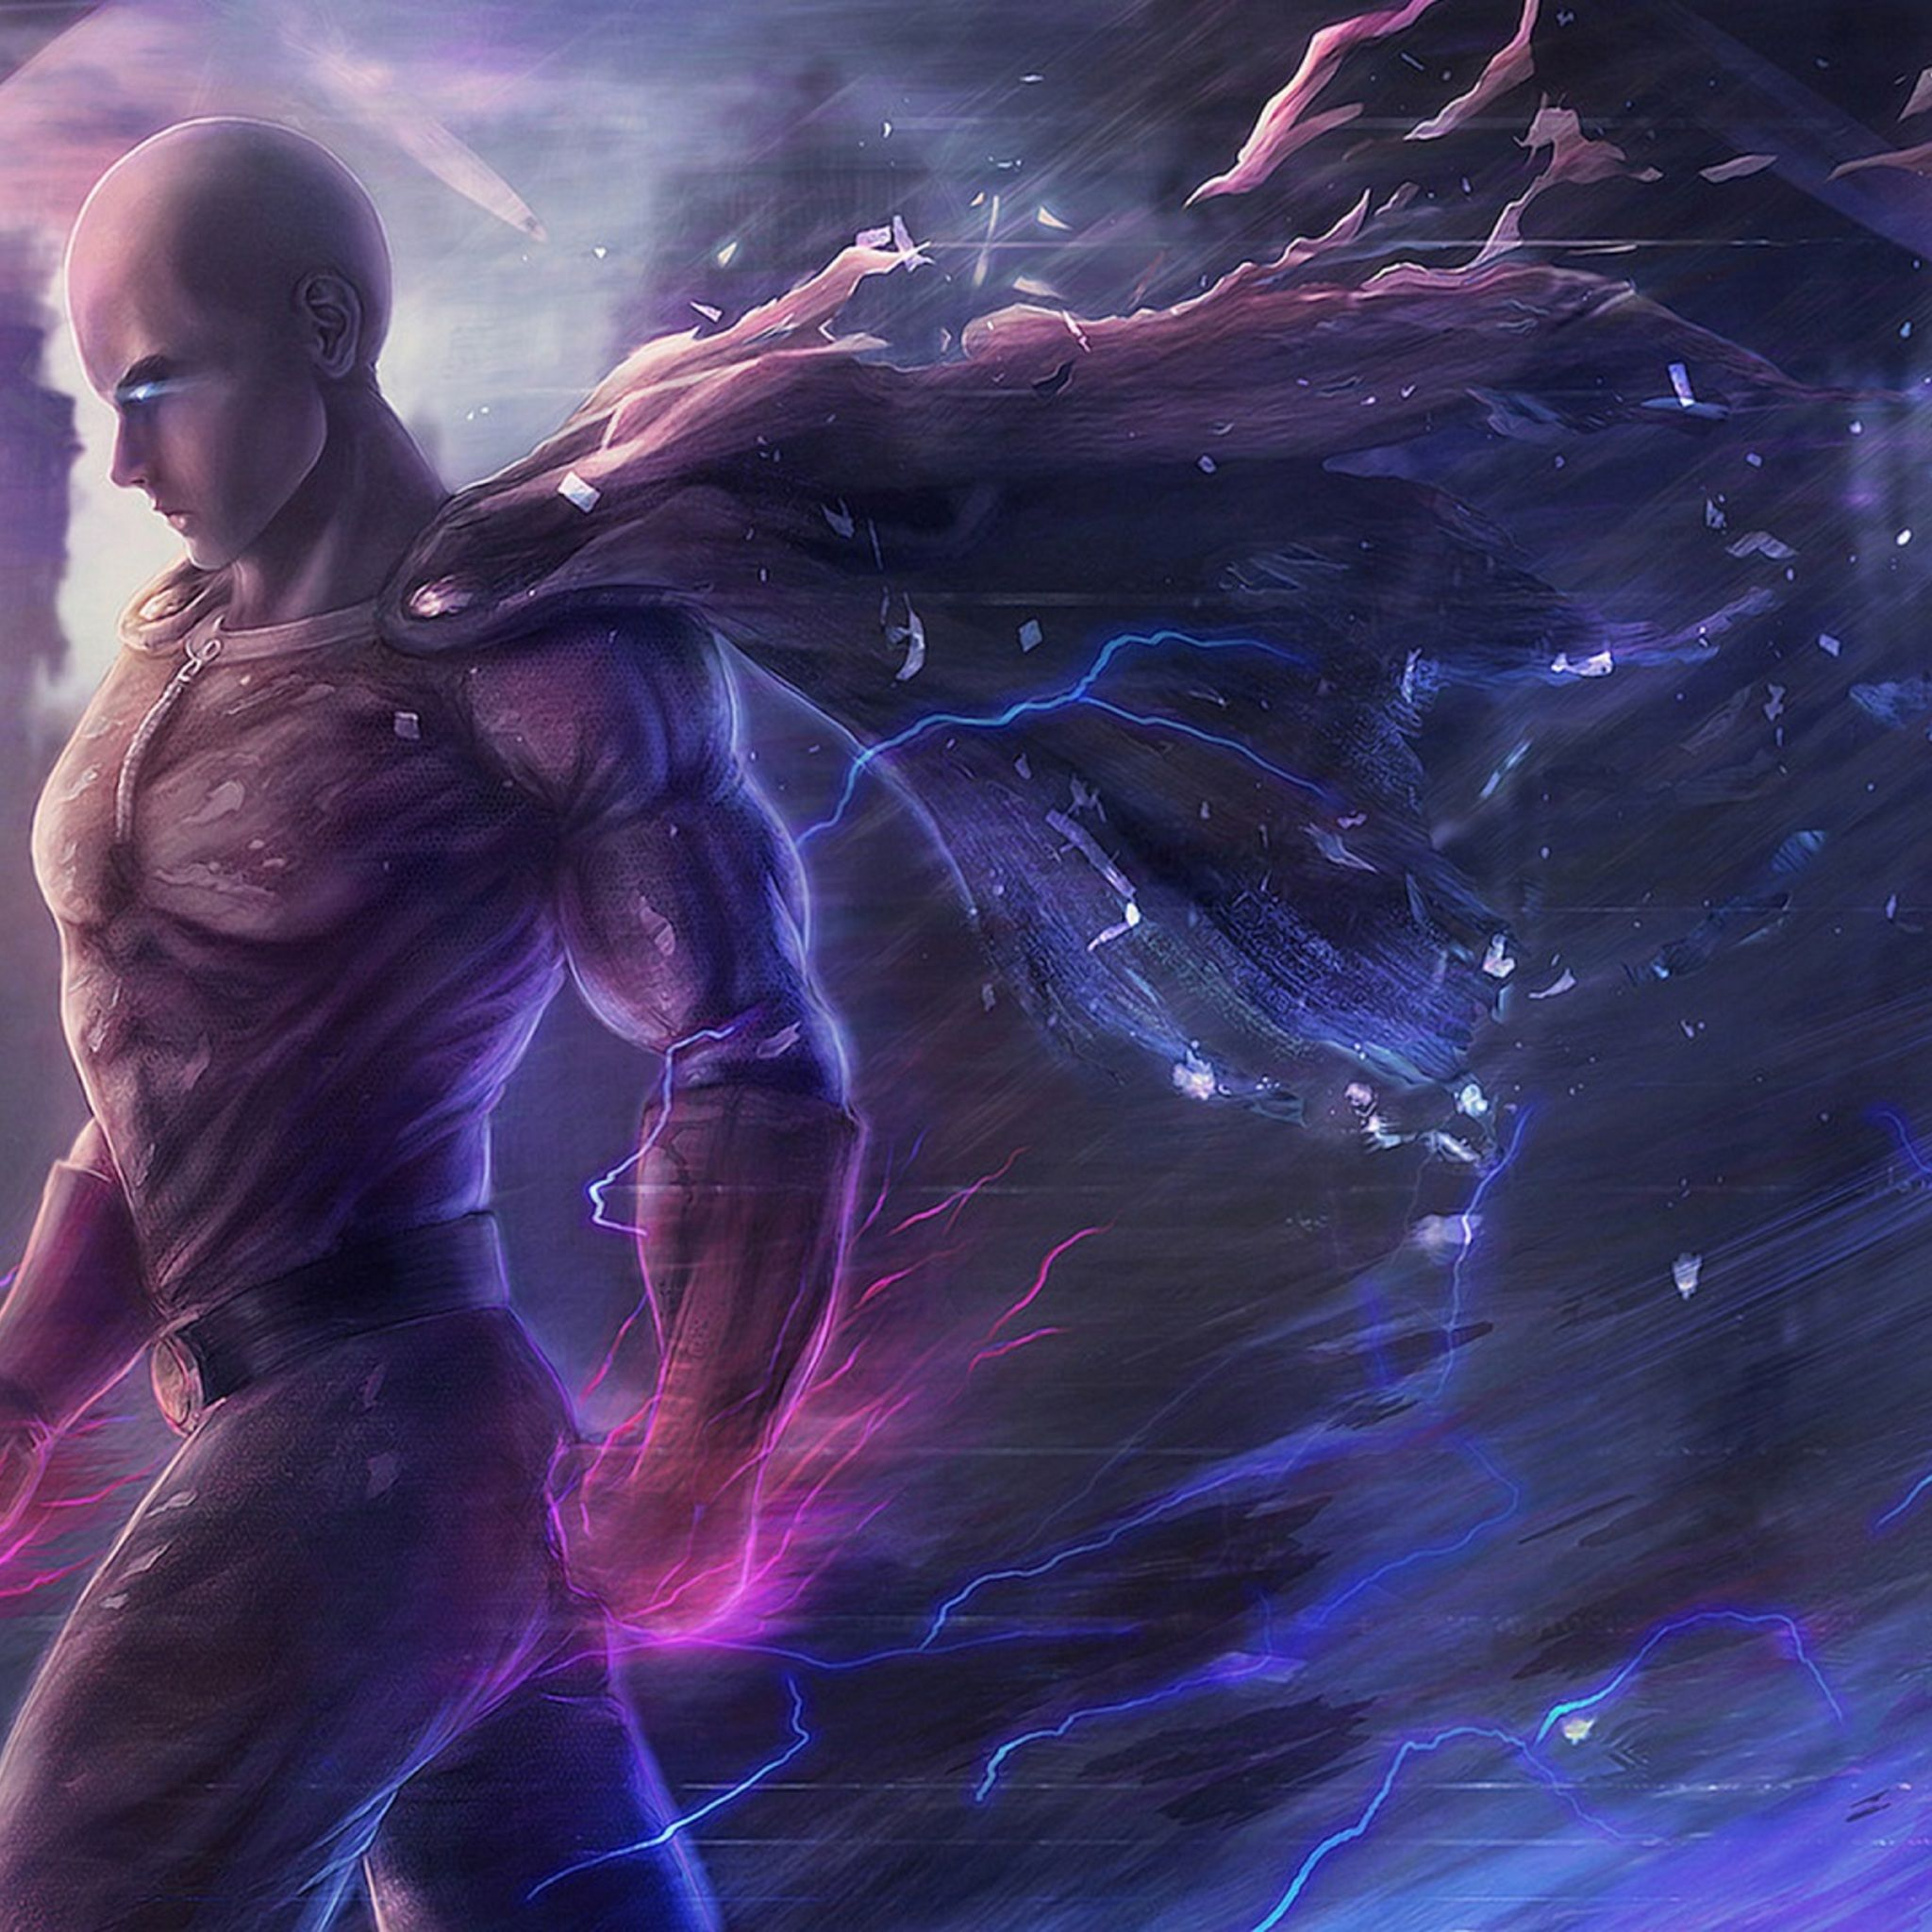 One Punch Man Wallpaper For Ipad 2048x2048 Saitama One Punch Man Artwork Ipad Air Hd 4k Die 78 Besten O In 2020 Saitama One Punch One Punch Man Saitama One Punch Man